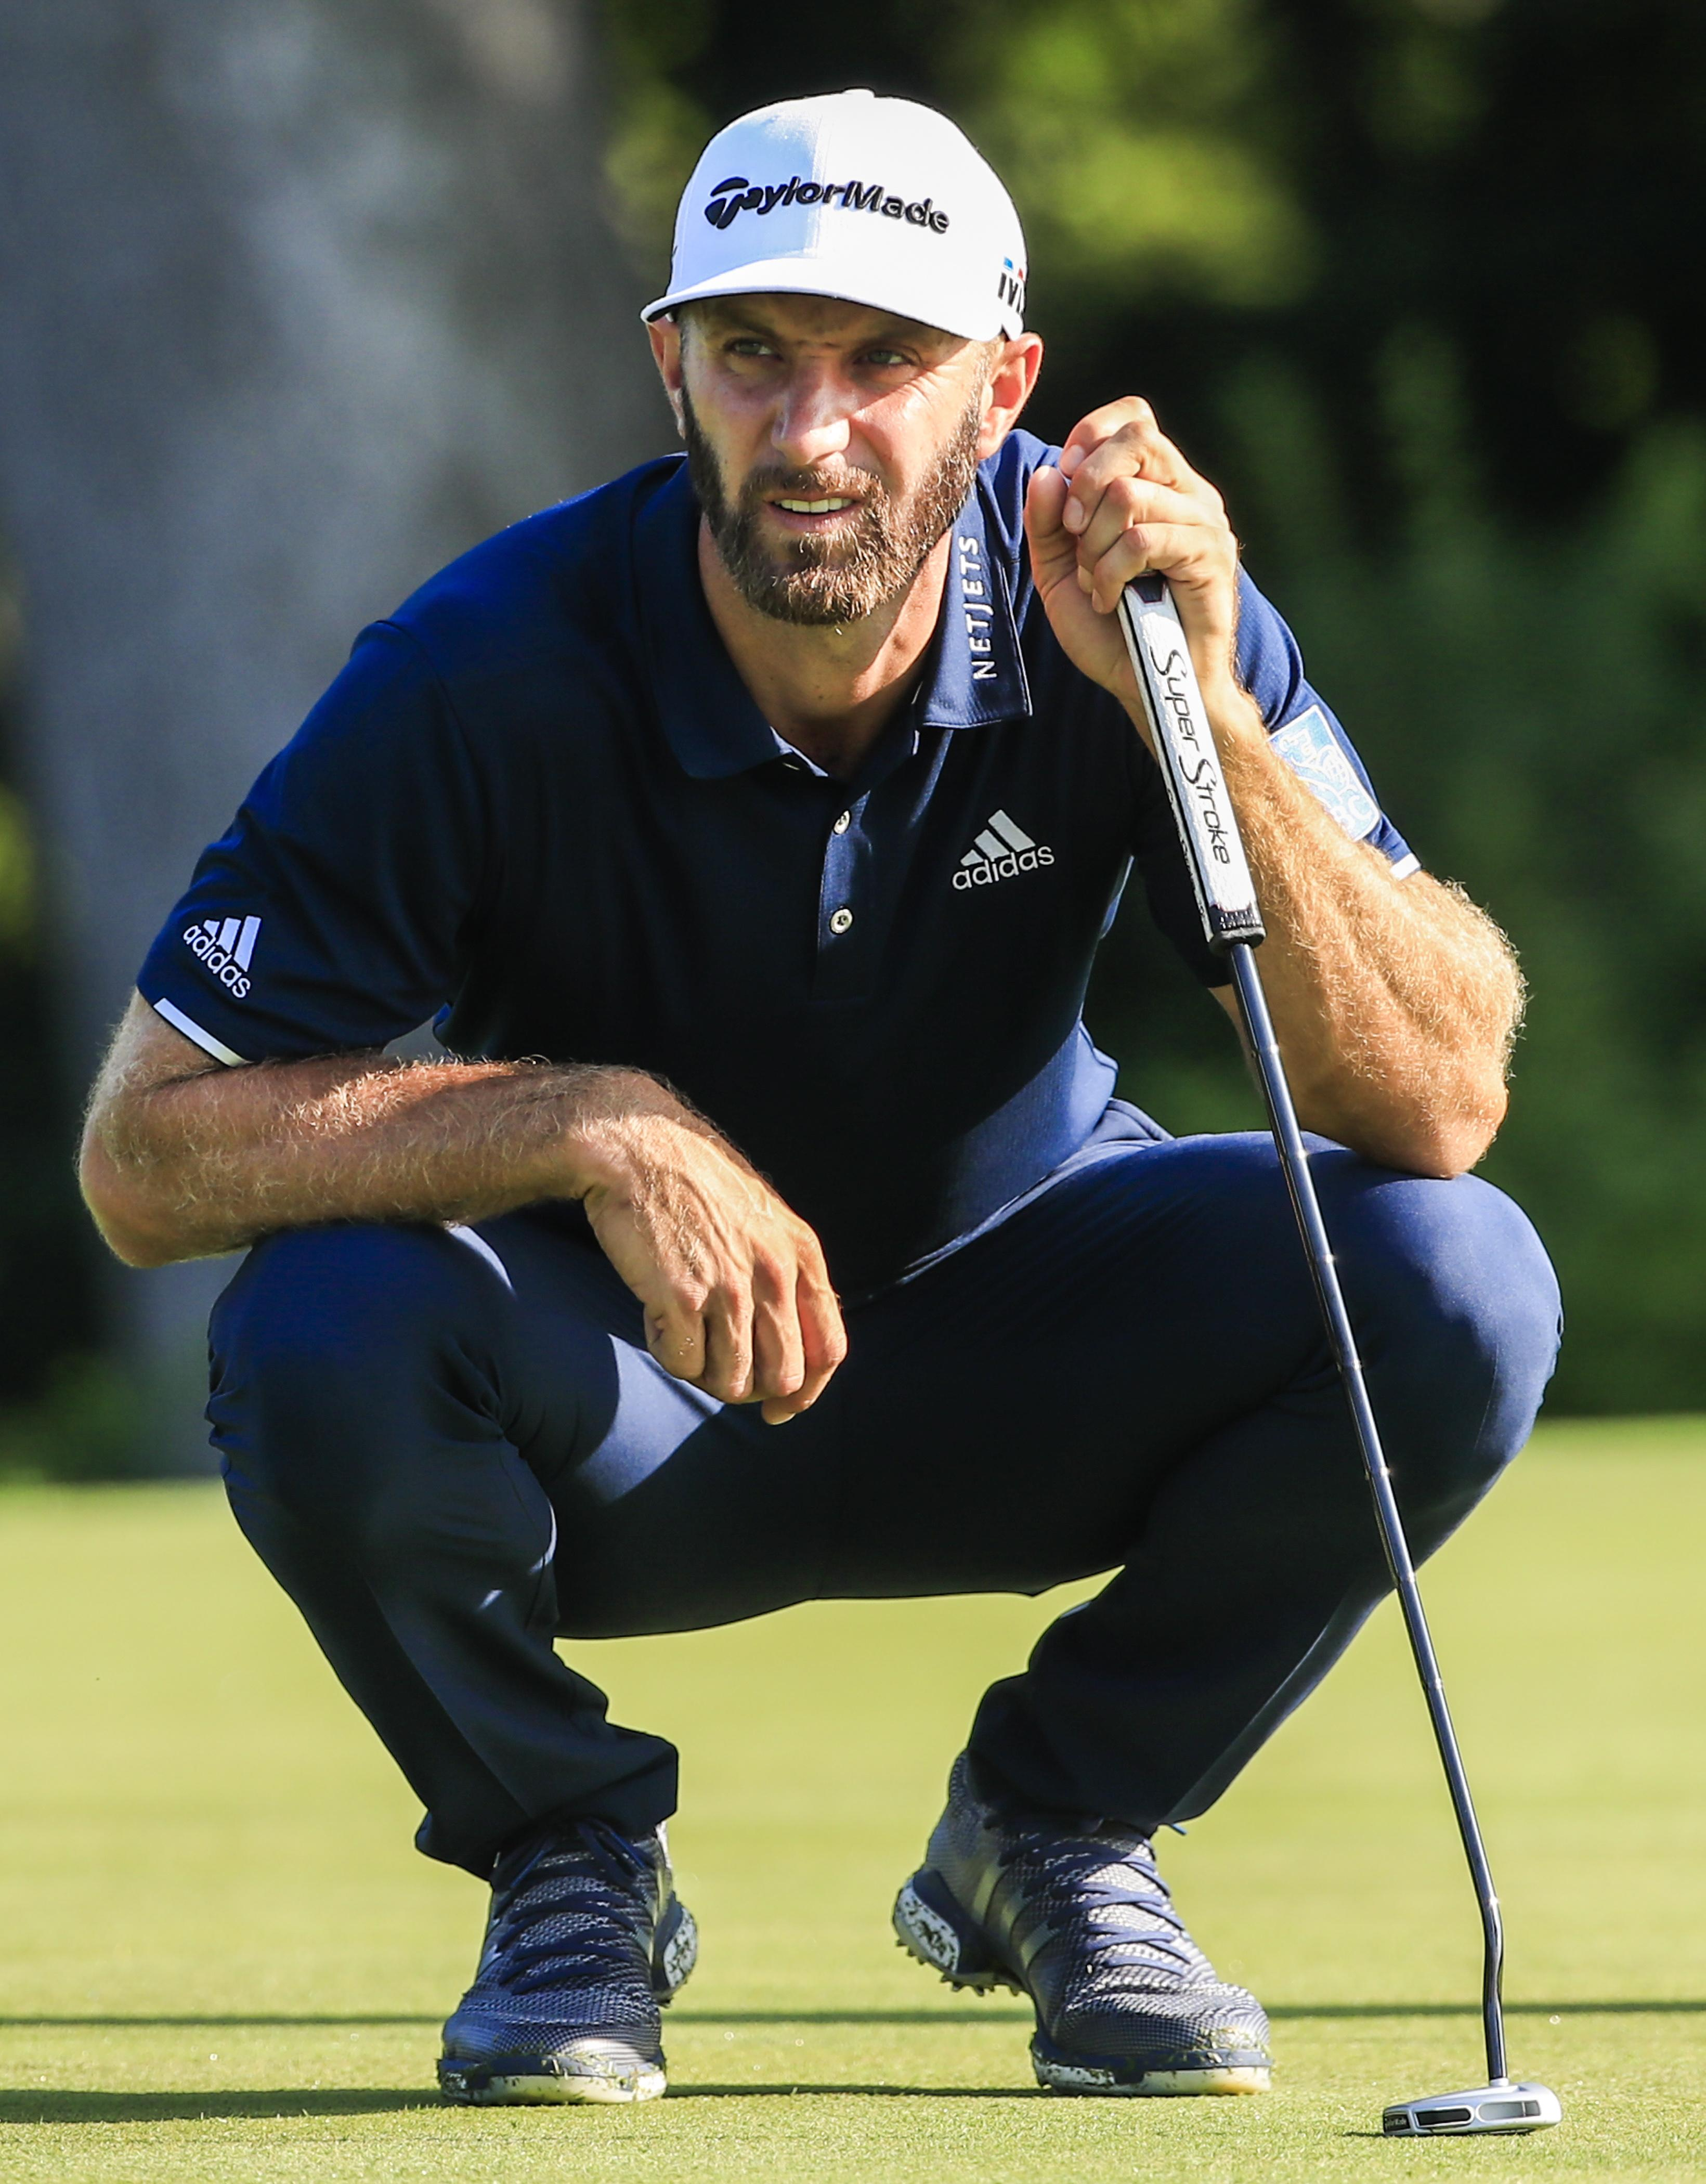 Dustin Johnson is staking a strong claim for his second Major